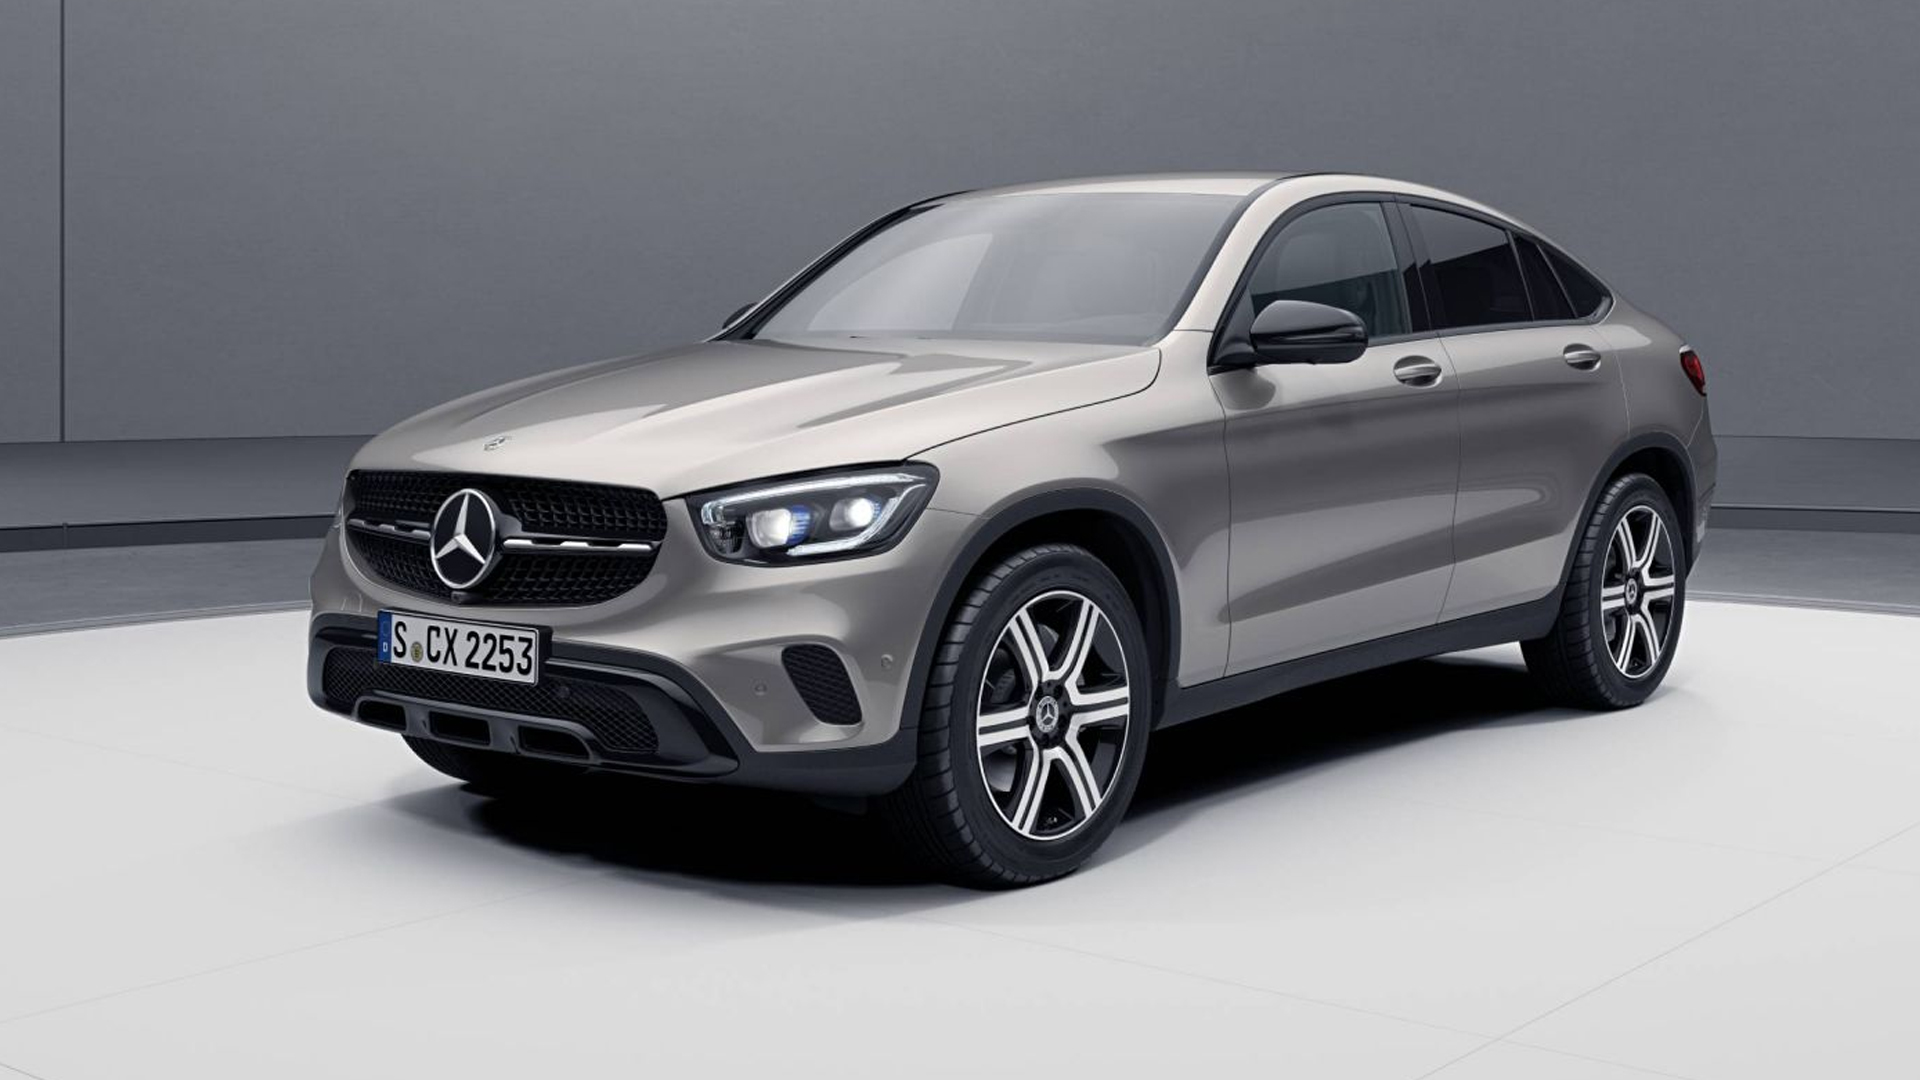 Mercedes-Benz GLC Coupe 2020 300d 4MATIC